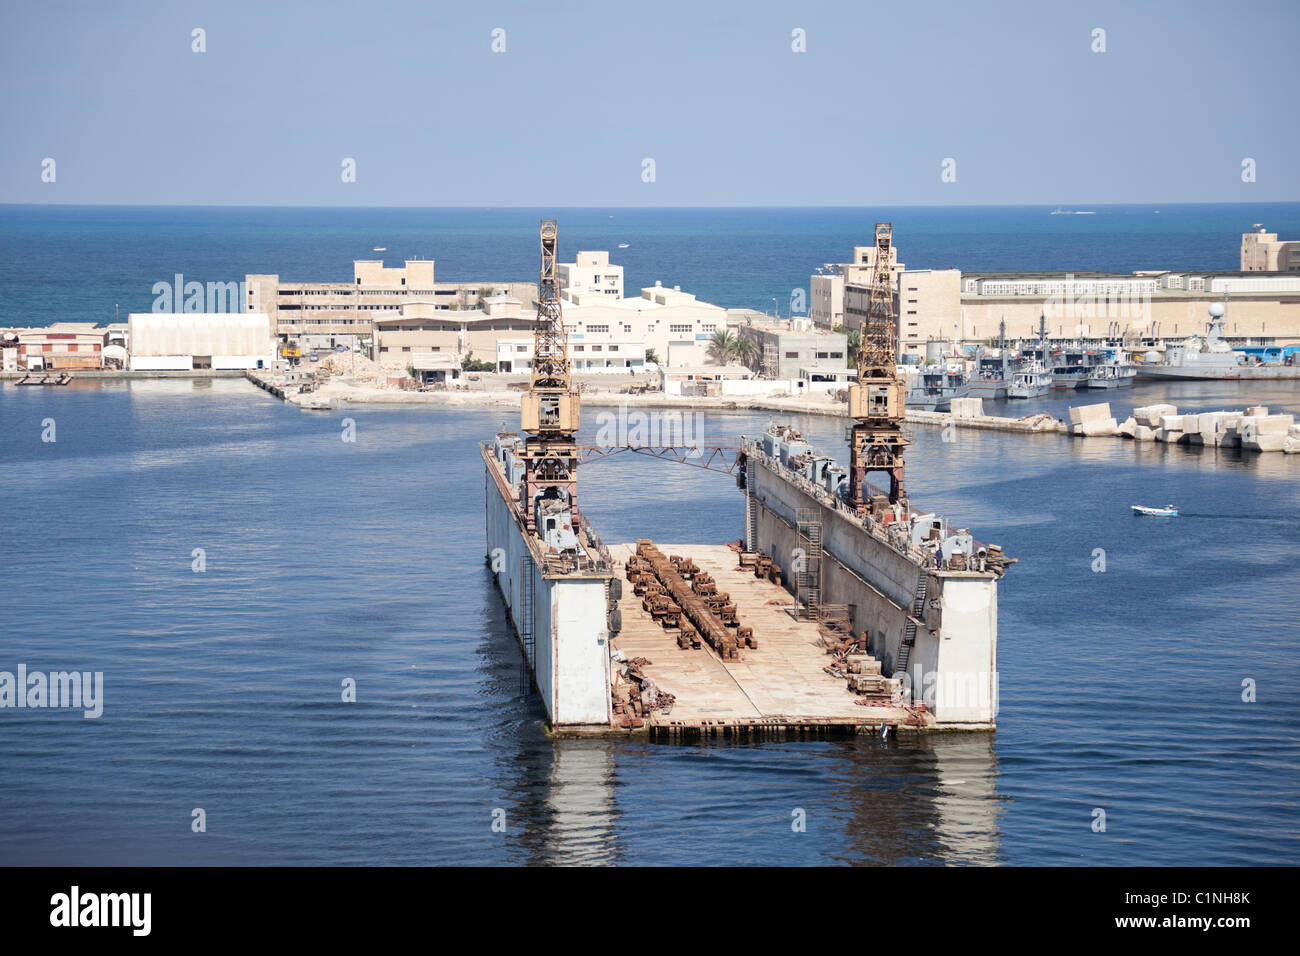 Floating dry dock, for ships to do repairs, maintenance and painting. and painting. and painting in port of Alexandria, - Stock Image